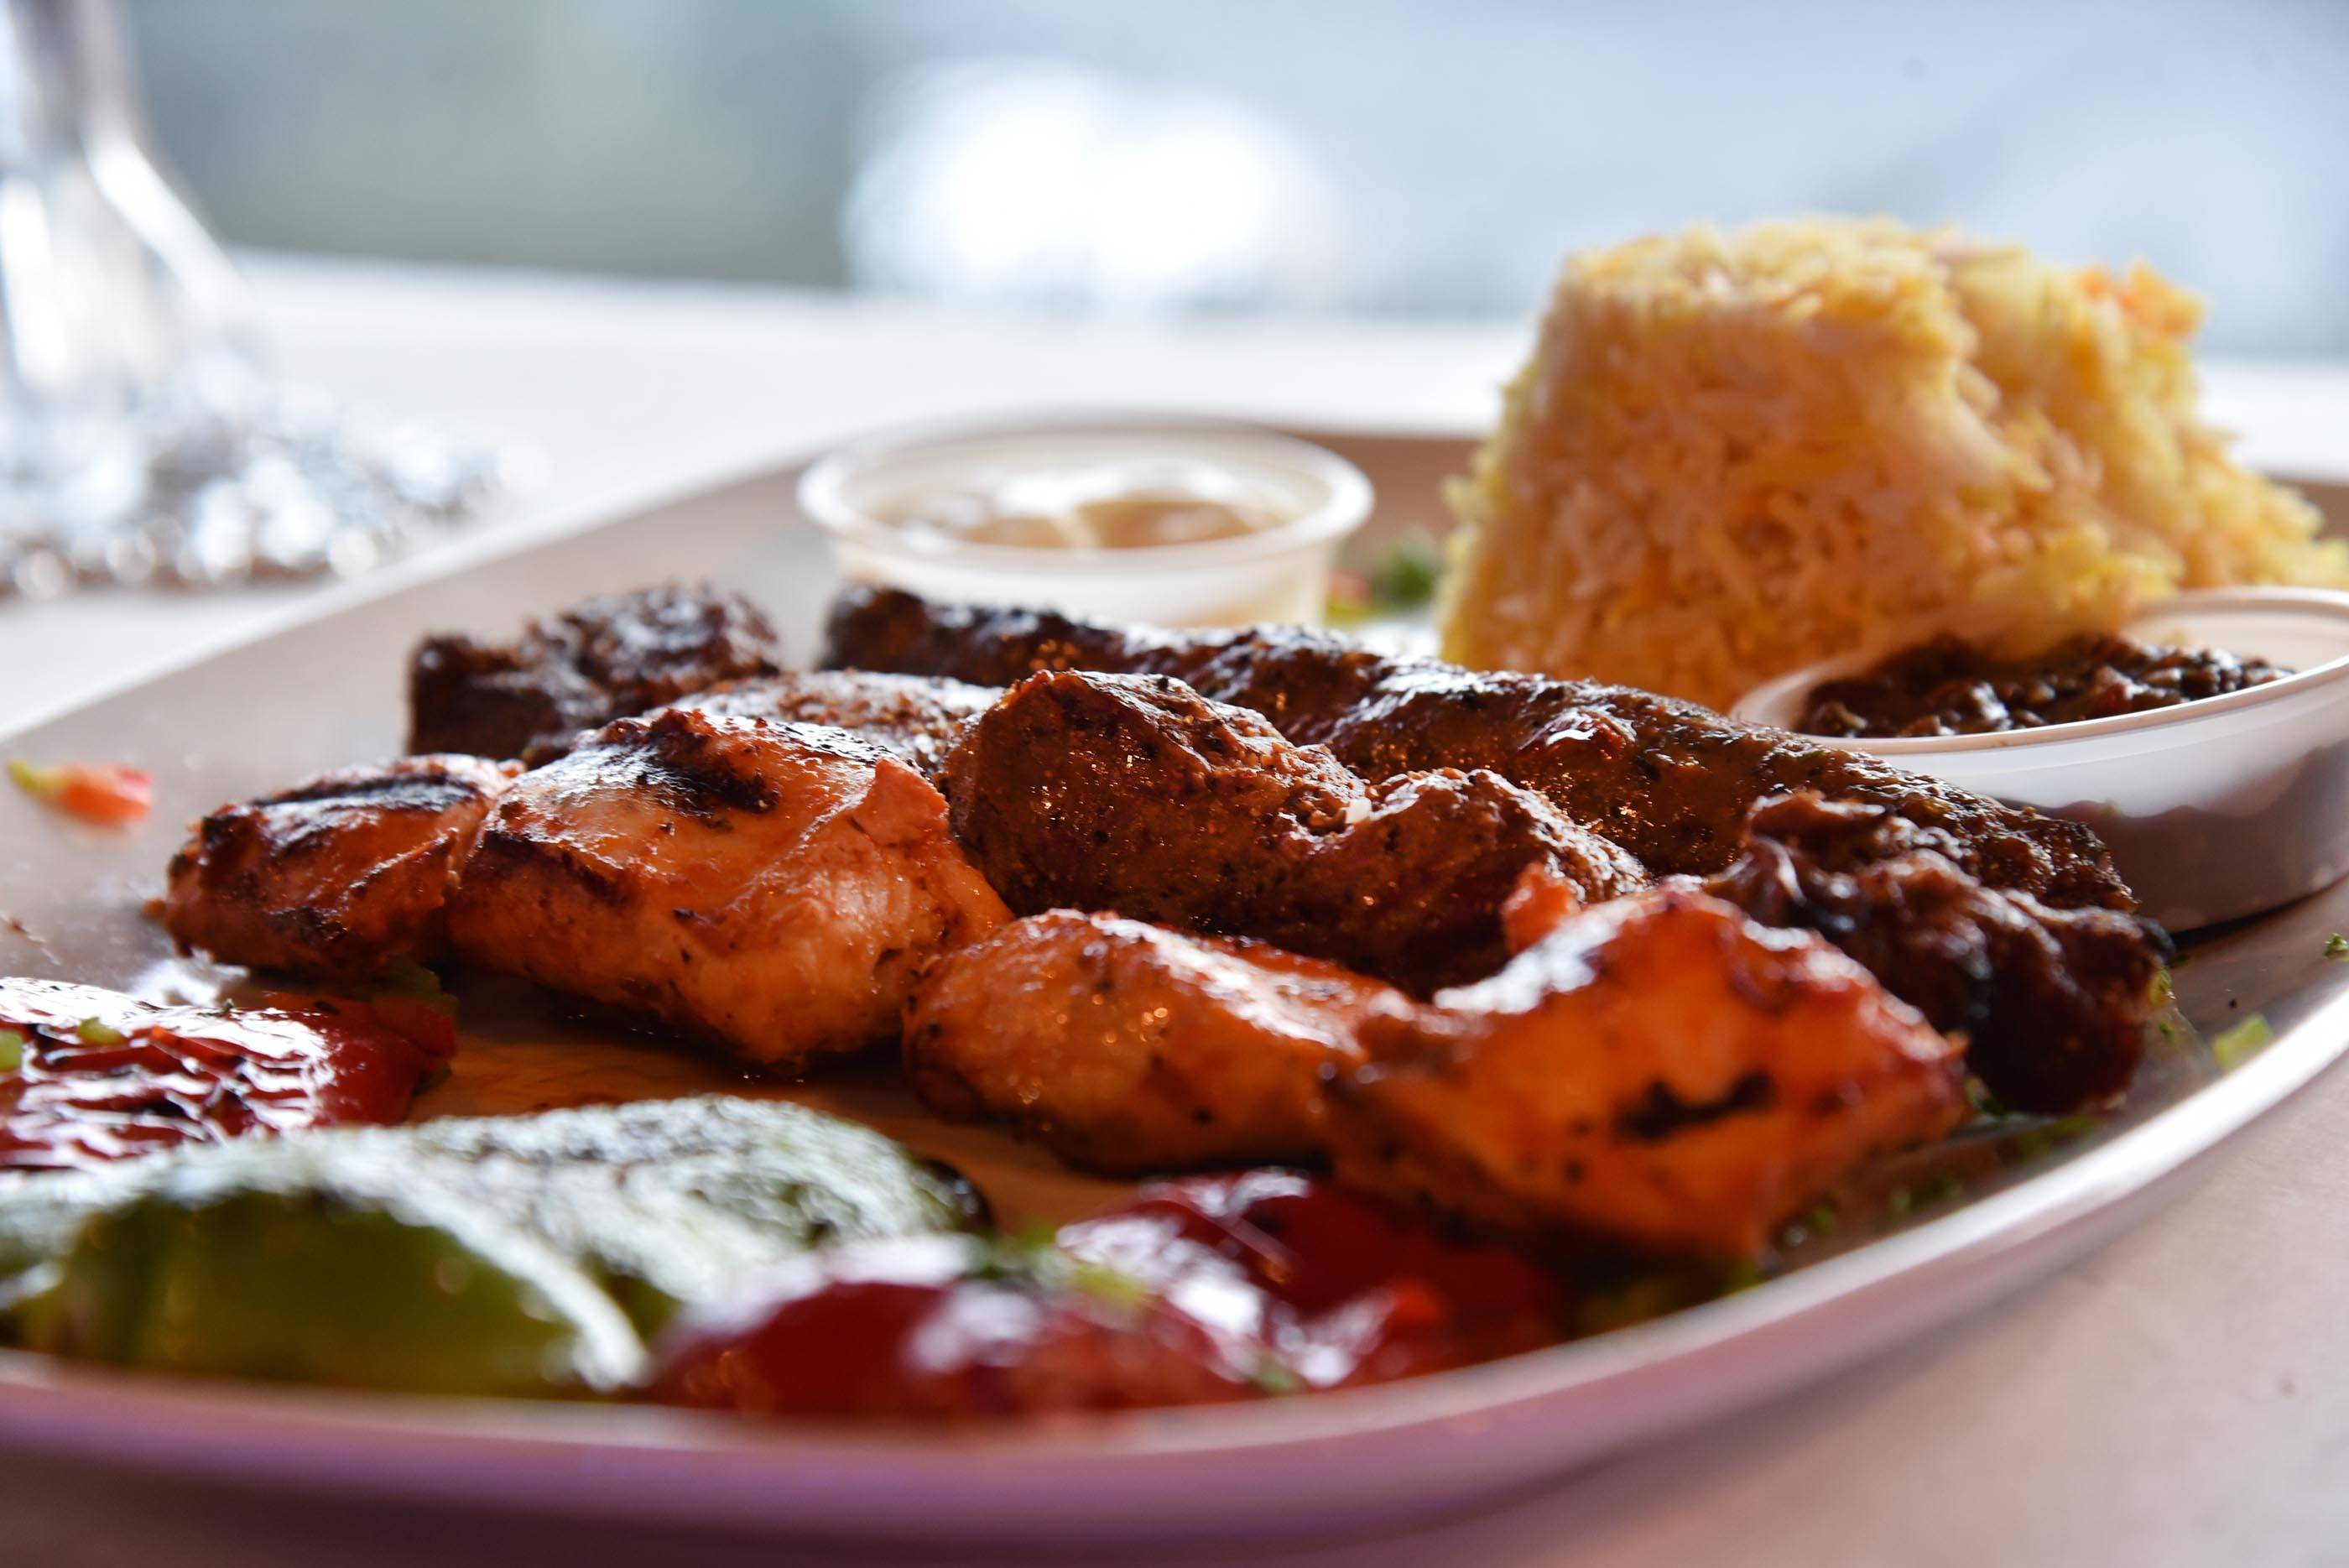 The combo plate lets diners try multiple meats at Eden on the River in St. Charles.